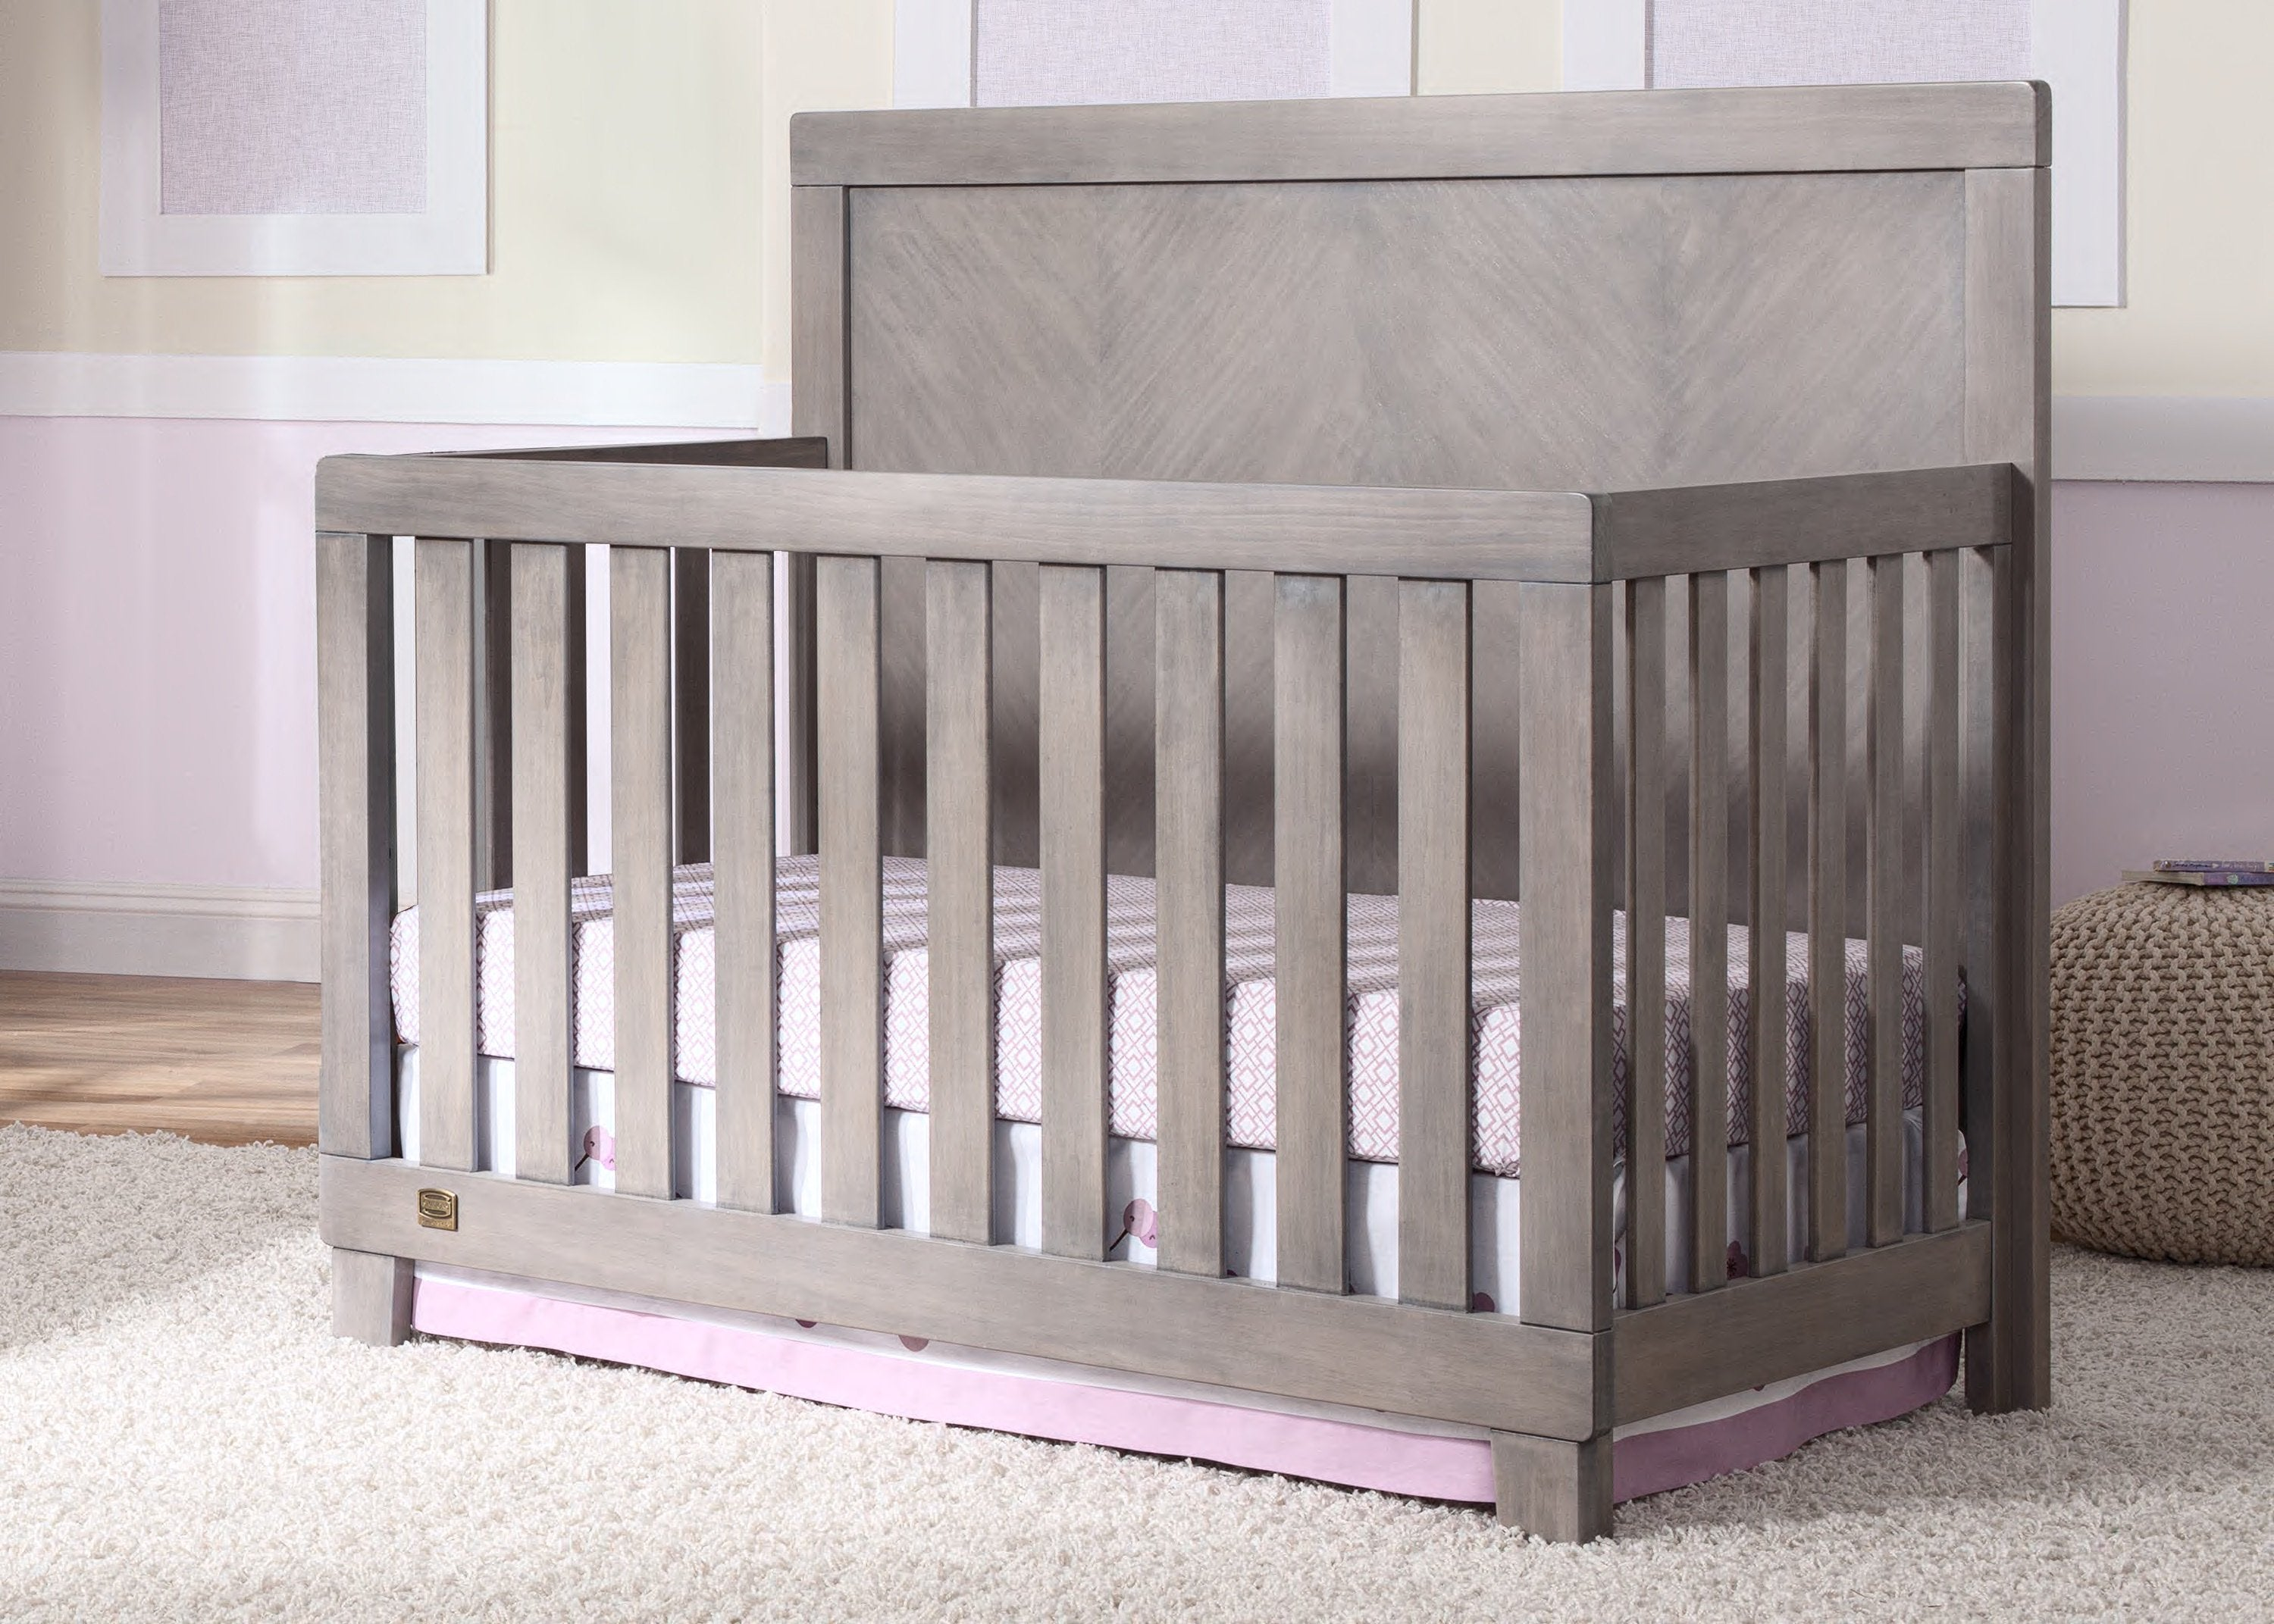 Simmons Kids Stained Grey (054) Bellante 4-in-1 Crib, Room Shot a0a